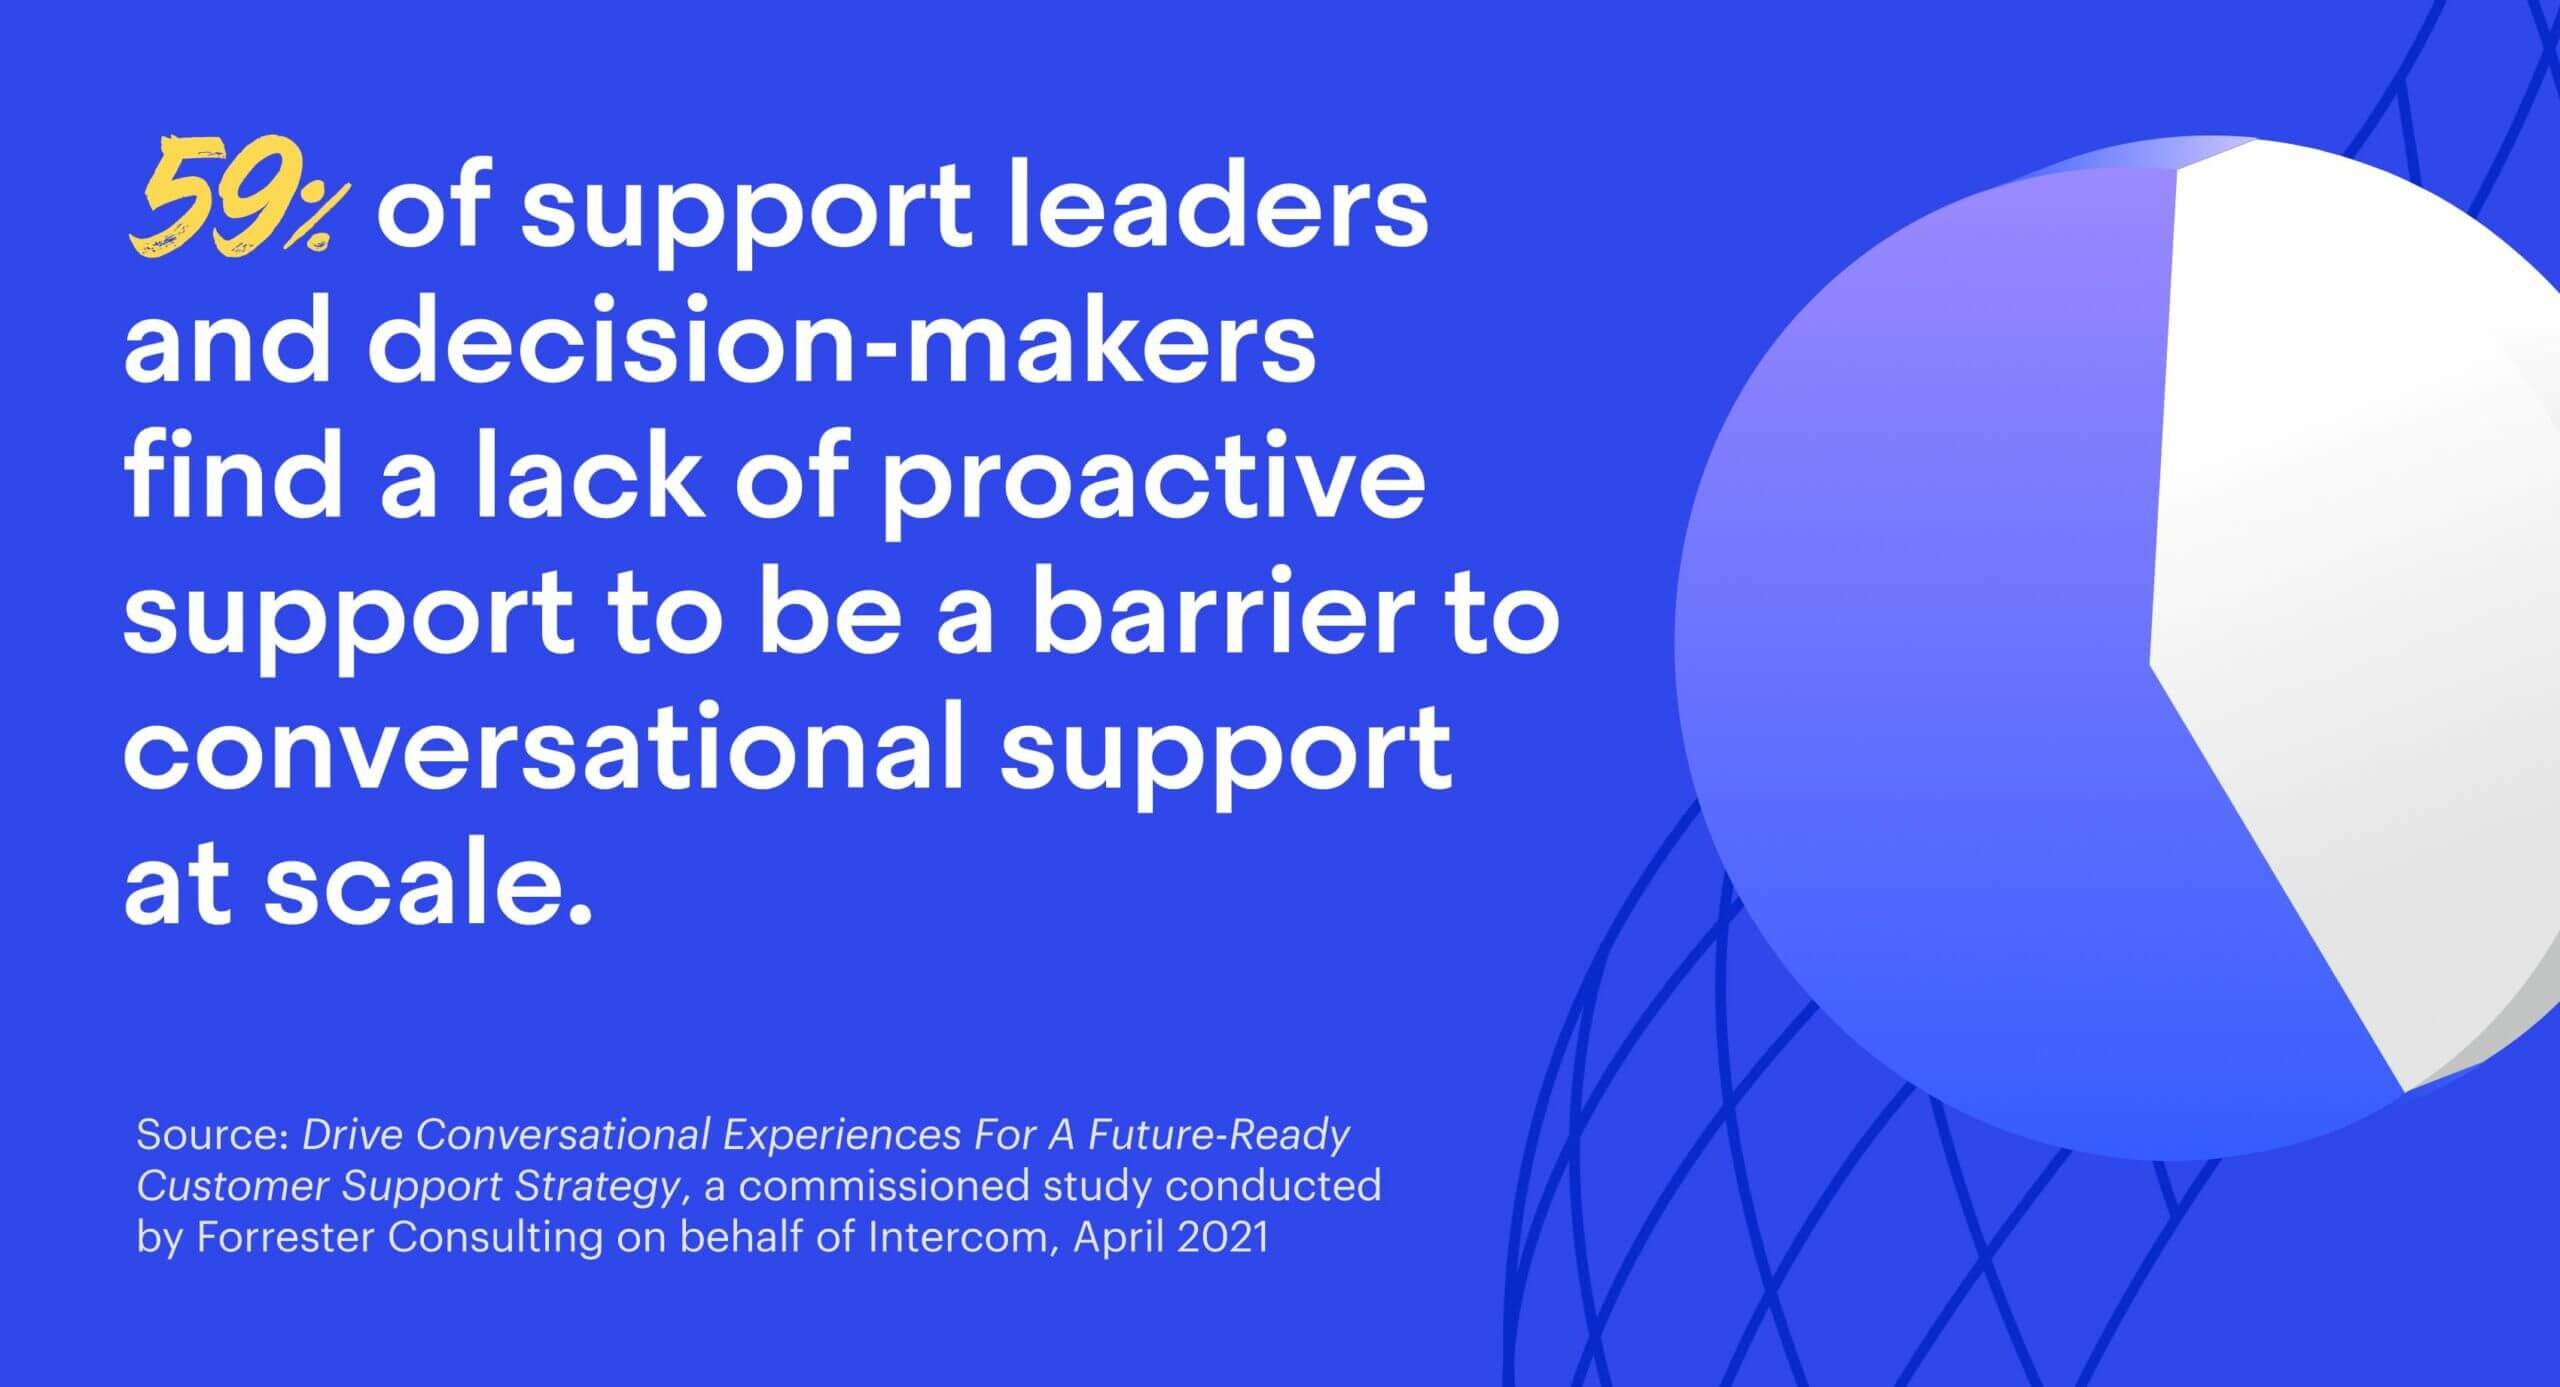 59% of support leaders and decision-makers find a lack of proactive support to be a barrier to conversational support at scale.